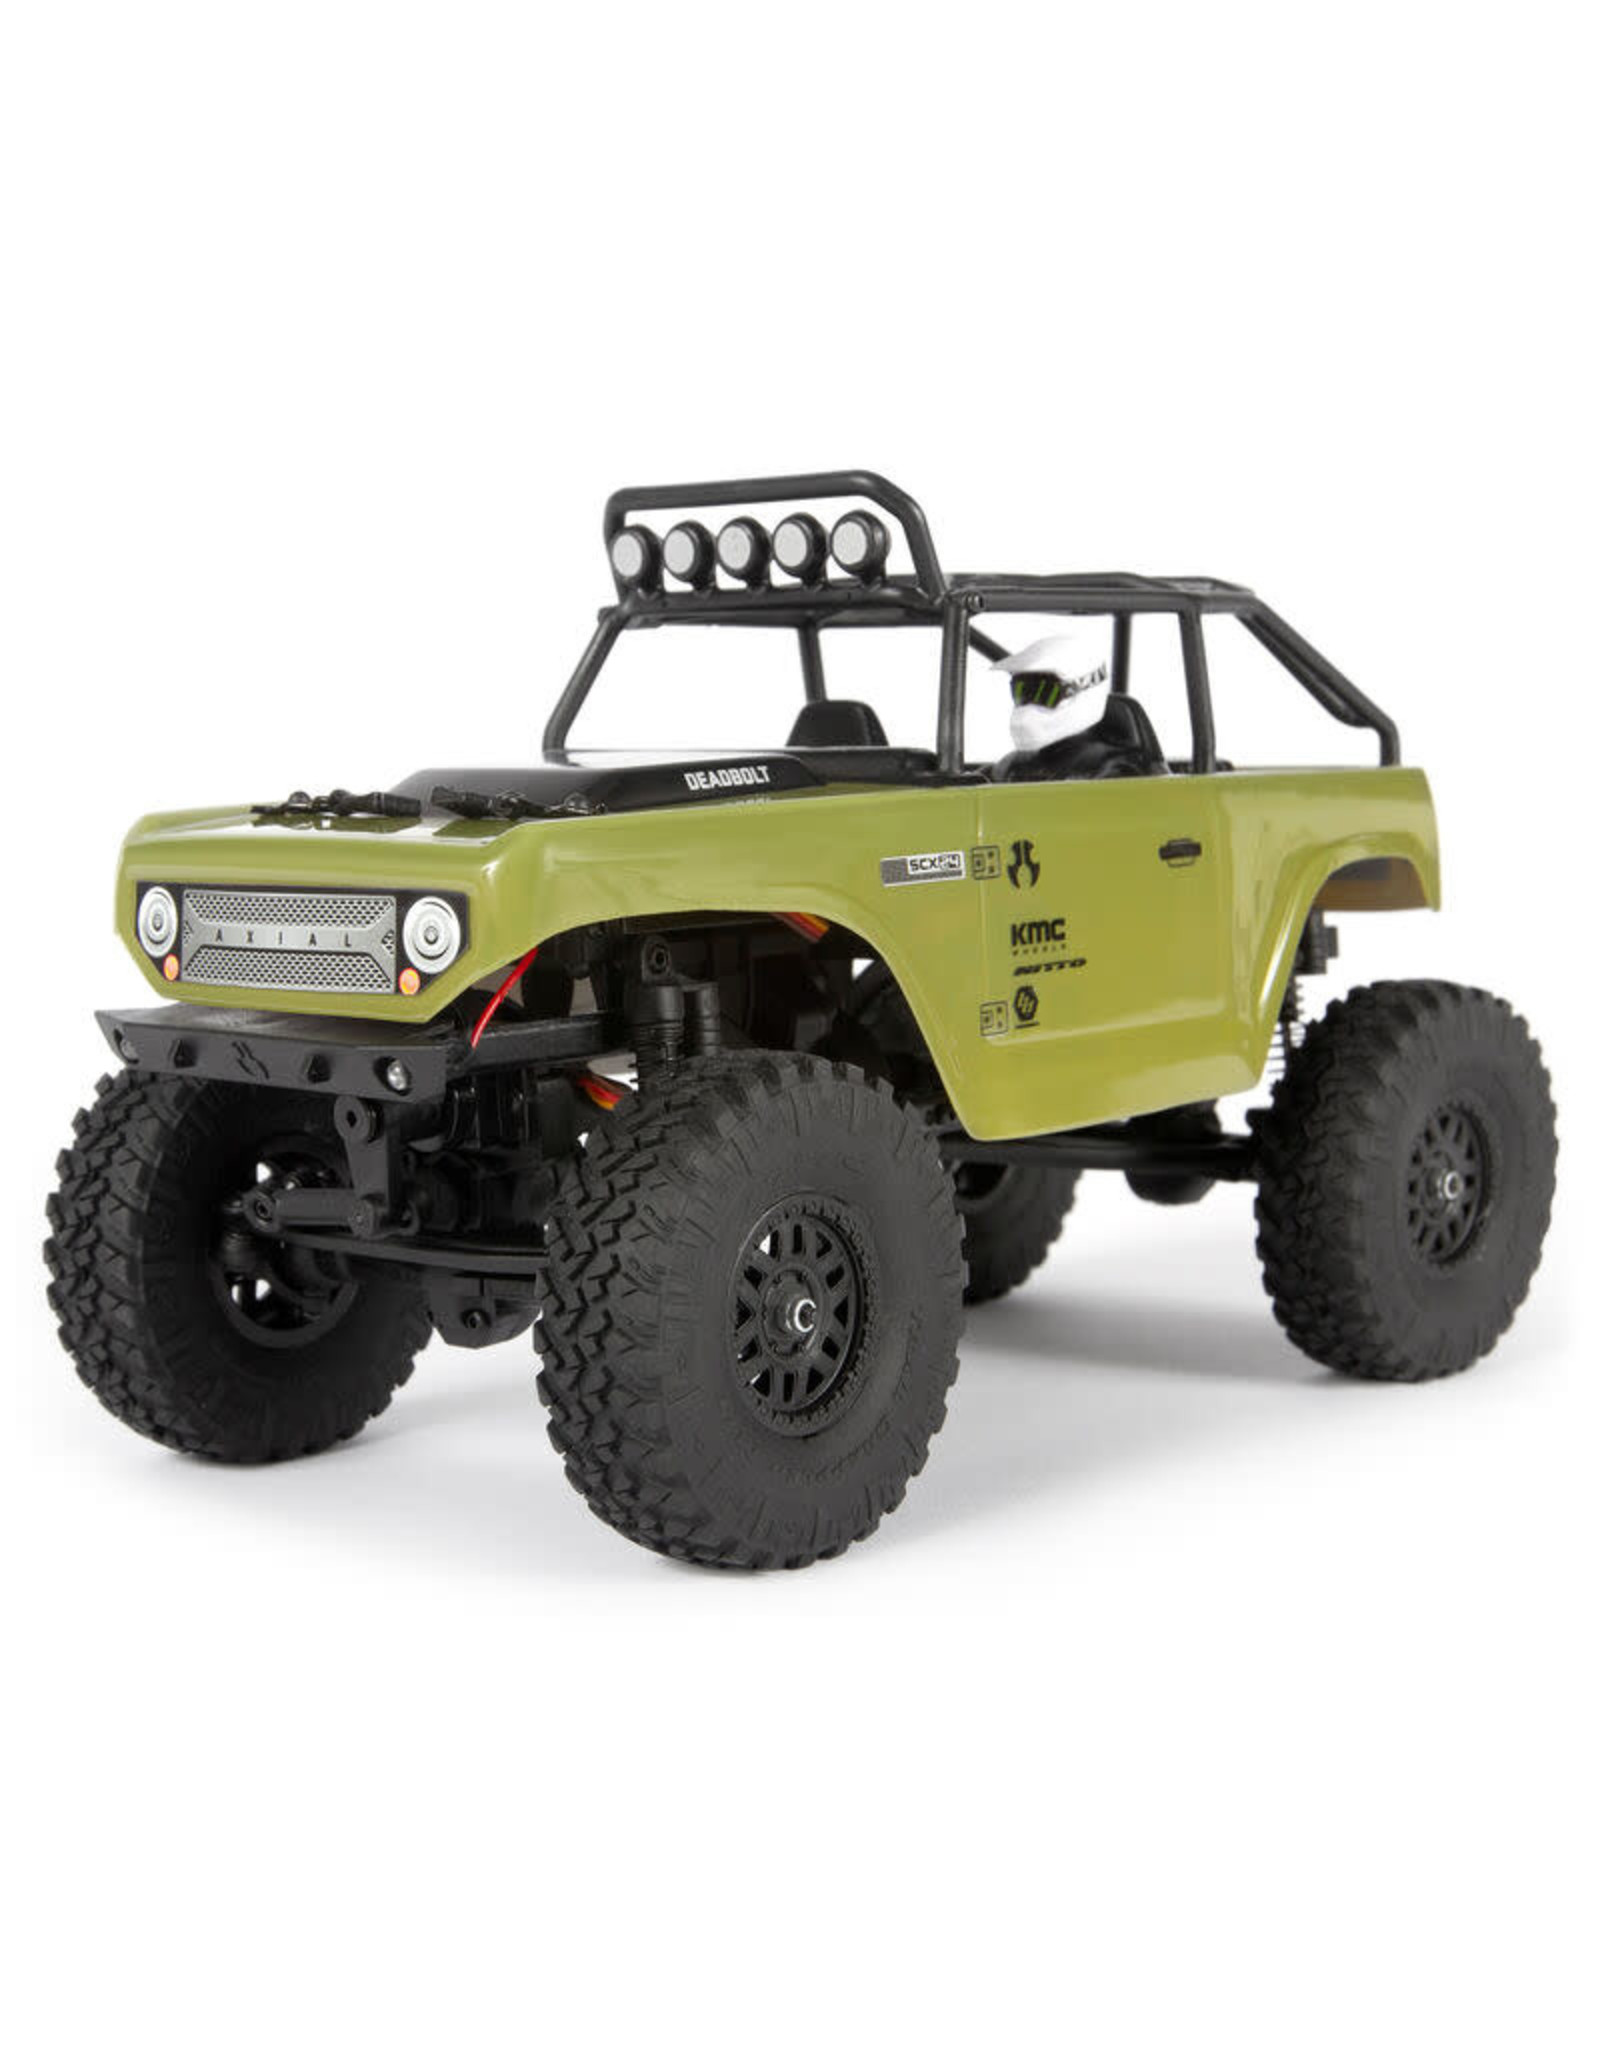 Axial 1/24 SCX24 Deadbolt 4WD Rock Crawler Brushed RTR, Green